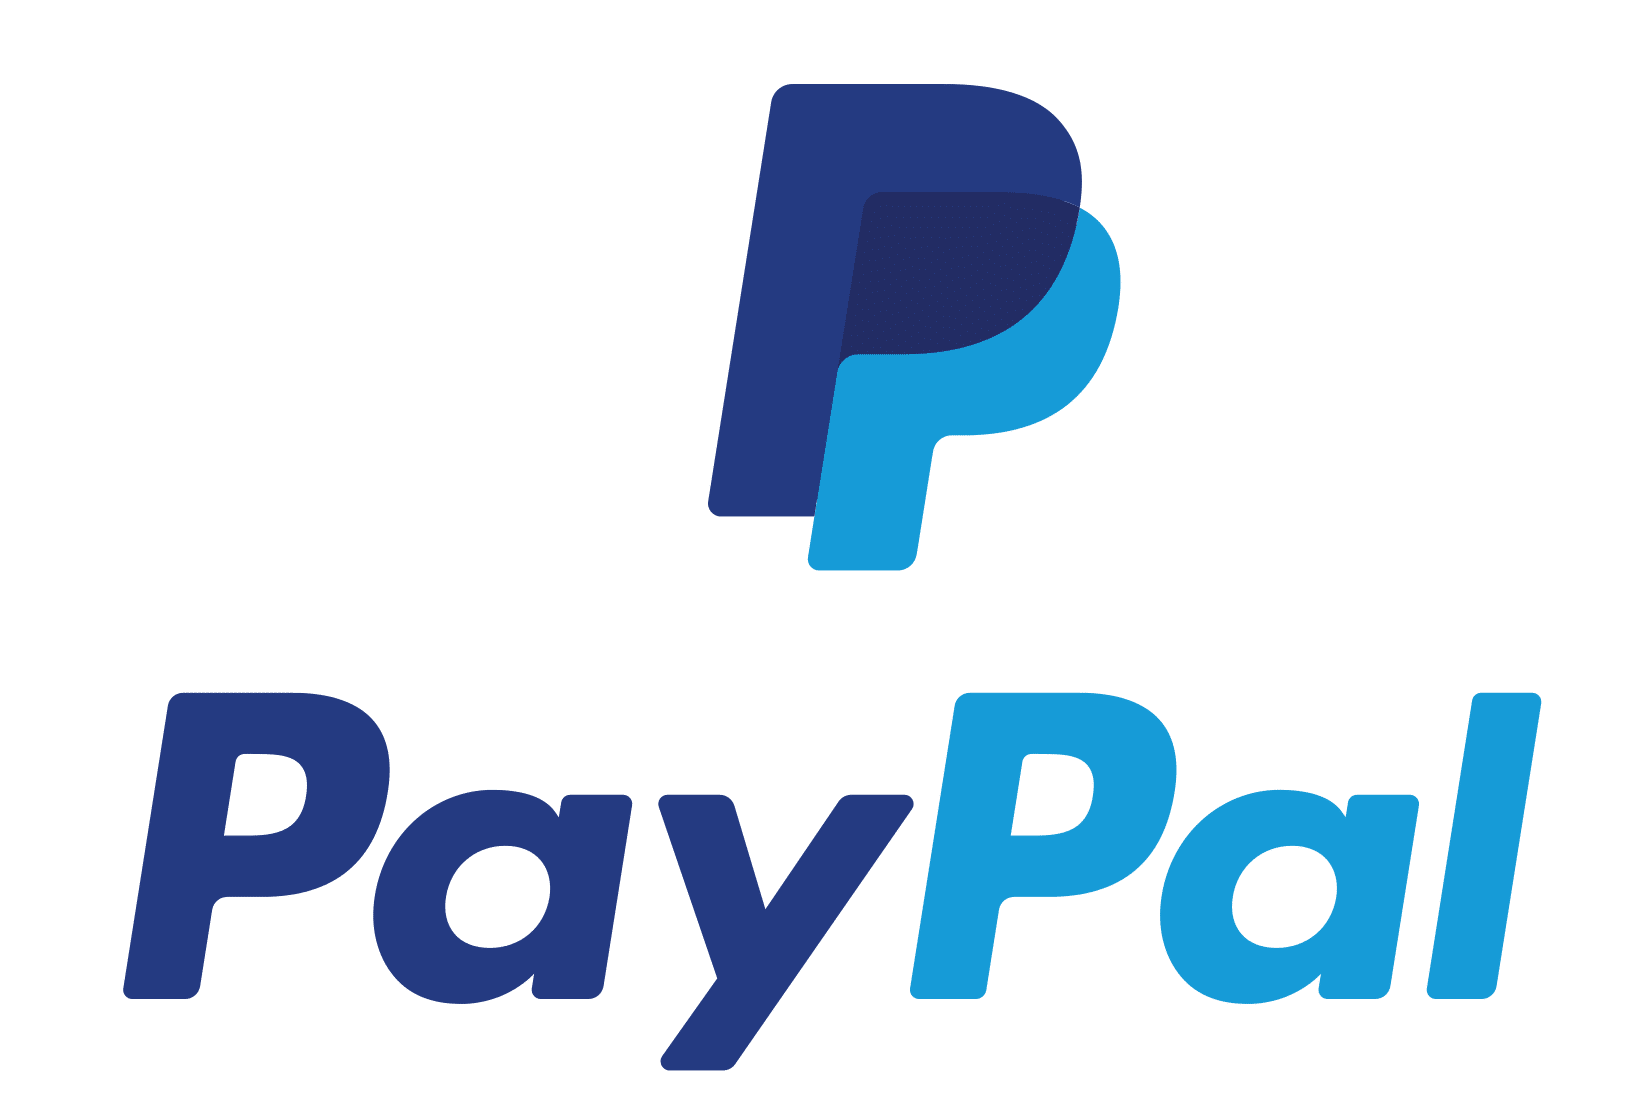 Pay Poal